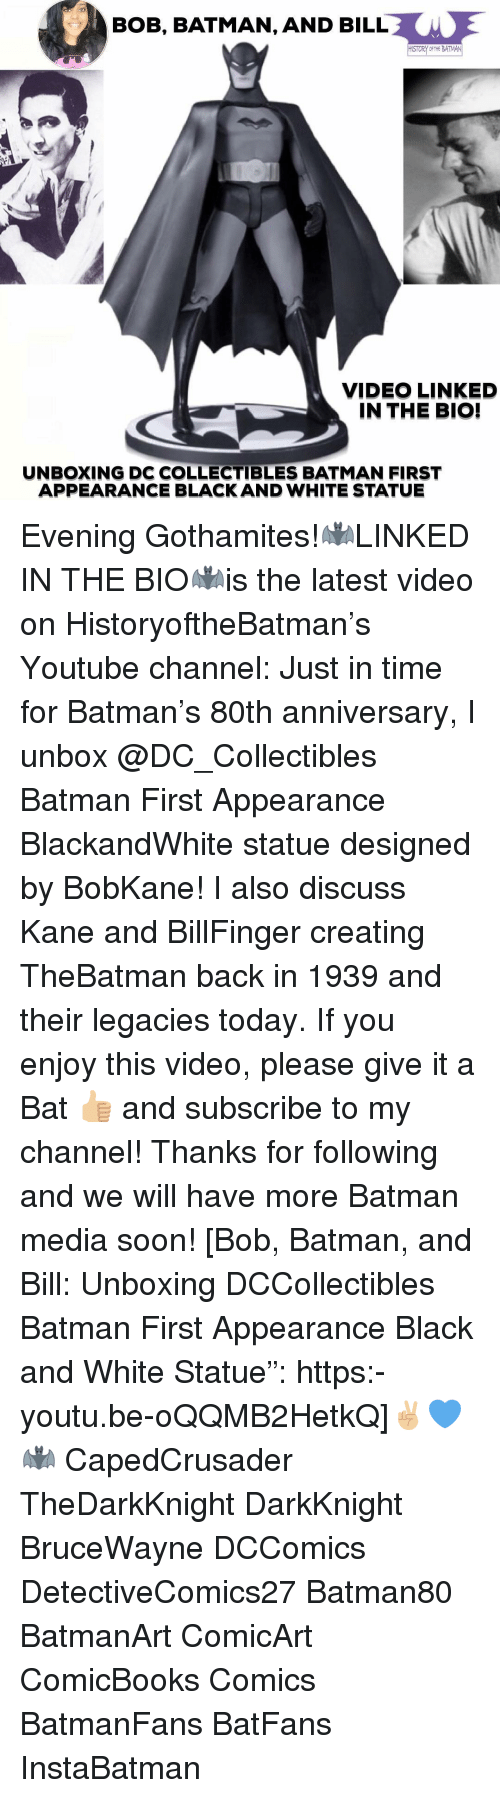 """Batman, Memes, and Soon...: BOB, BATMAN, AND BILL  OFTHE BATMAN  VIDEO LINKED  IN THE BIO!  UNBOXING DC COLLECTIBLES BATMAN FIRST  APPEARANCE BLACK AND WHITE STATUE Evening Gothamites!🦇LINKED IN THE BIO🦇is the latest video on HistoryoftheBatman's Youtube channel: Just in time for Batman's 80th anniversary, I unbox @DC_Collectibles Batman First Appearance BlackandWhite statue designed by BobKane! I also discuss Kane and BillFinger creating TheBatman back in 1939 and their legacies today. If you enjoy this video, please give it a Bat 👍🏼 and subscribe to my channel! Thanks for following and we will have more Batman media soon! [Bob, Batman, and Bill: Unboxing DCCollectibles Batman First Appearance Black and White Statue"""": https:-youtu.be-oQQMB2HetkQ]✌🏼💙🦇 CapedCrusader TheDarkKnight DarkKnight BruceWayne DCComics DetectiveComics27 Batman80 BatmanArt ComicArt ComicBooks Comics BatmanFans BatFans InstaBatman"""